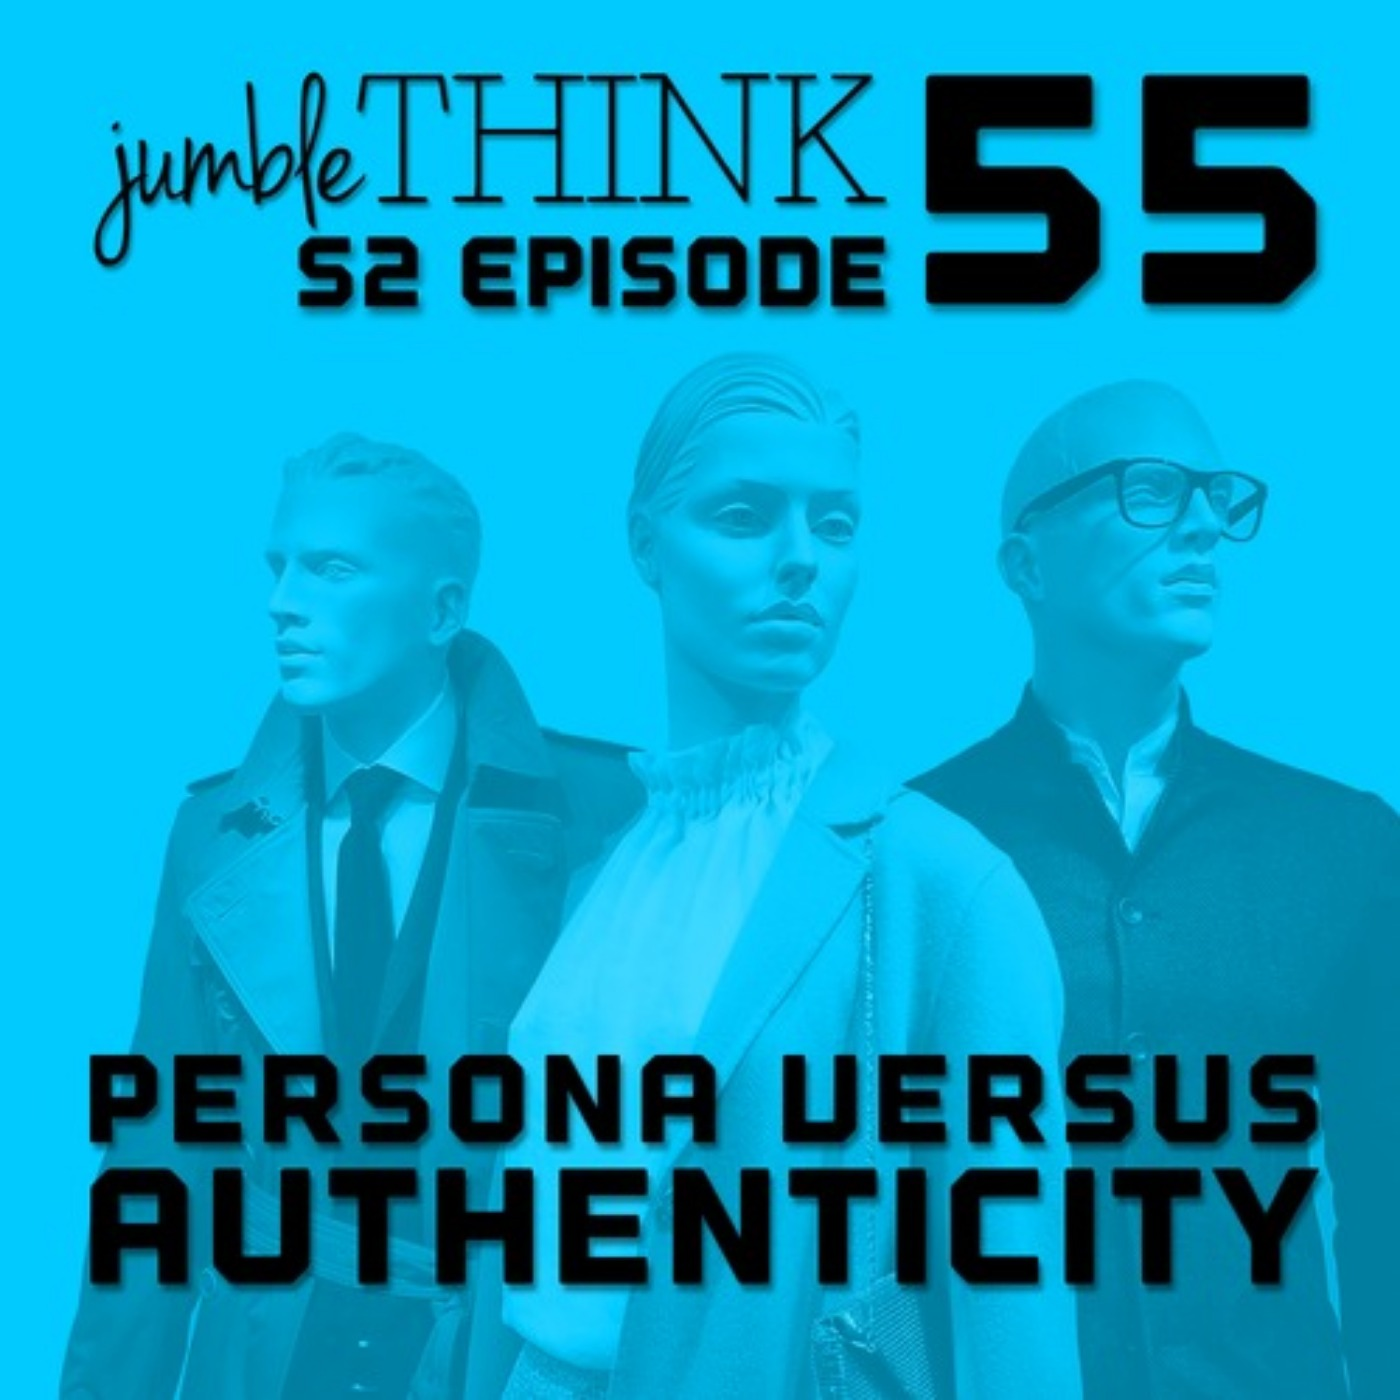 Persona vs Authenticity | Michael Woodward